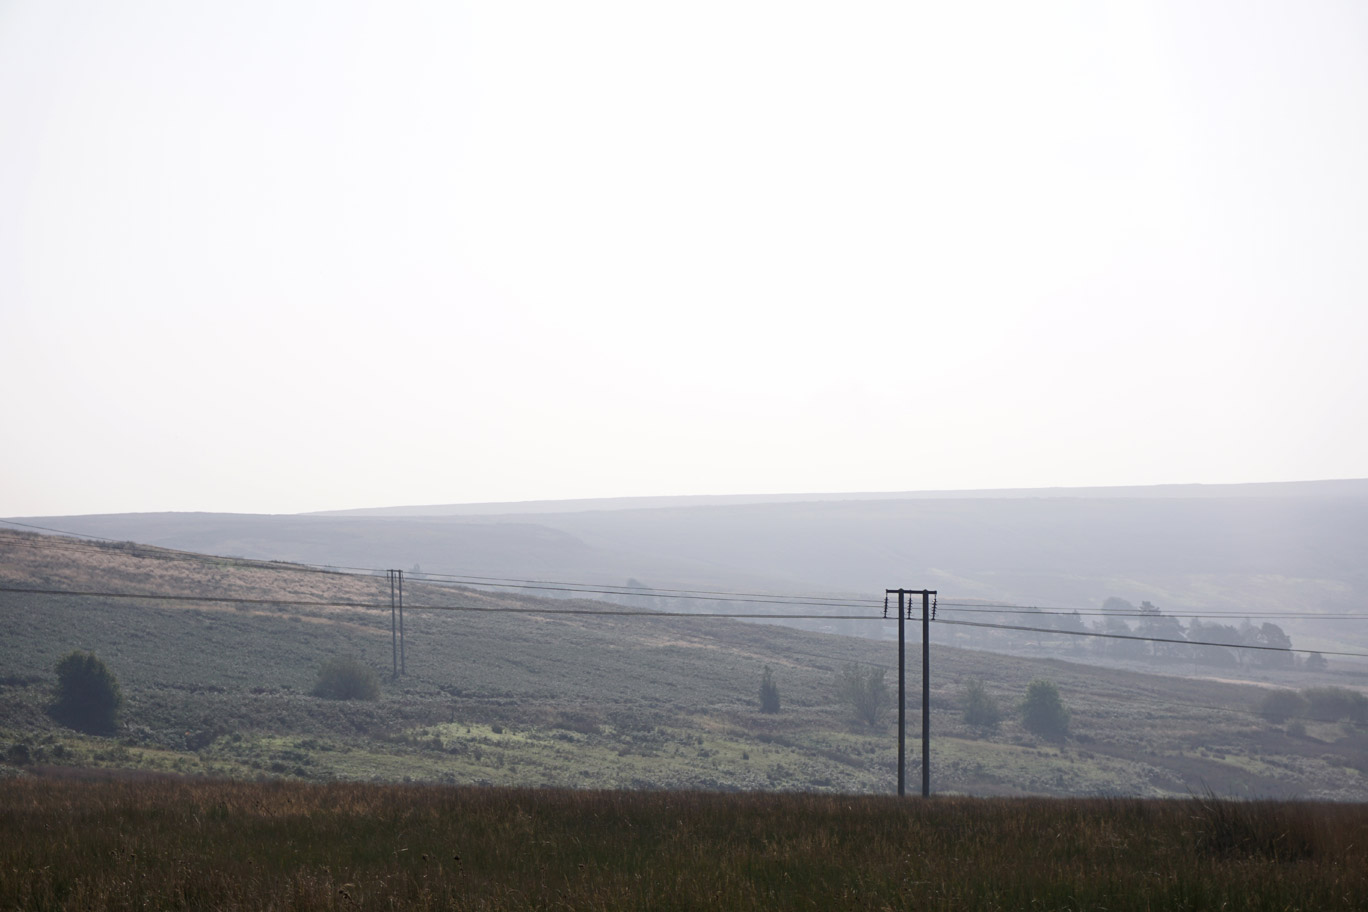 Pylons through the countryside